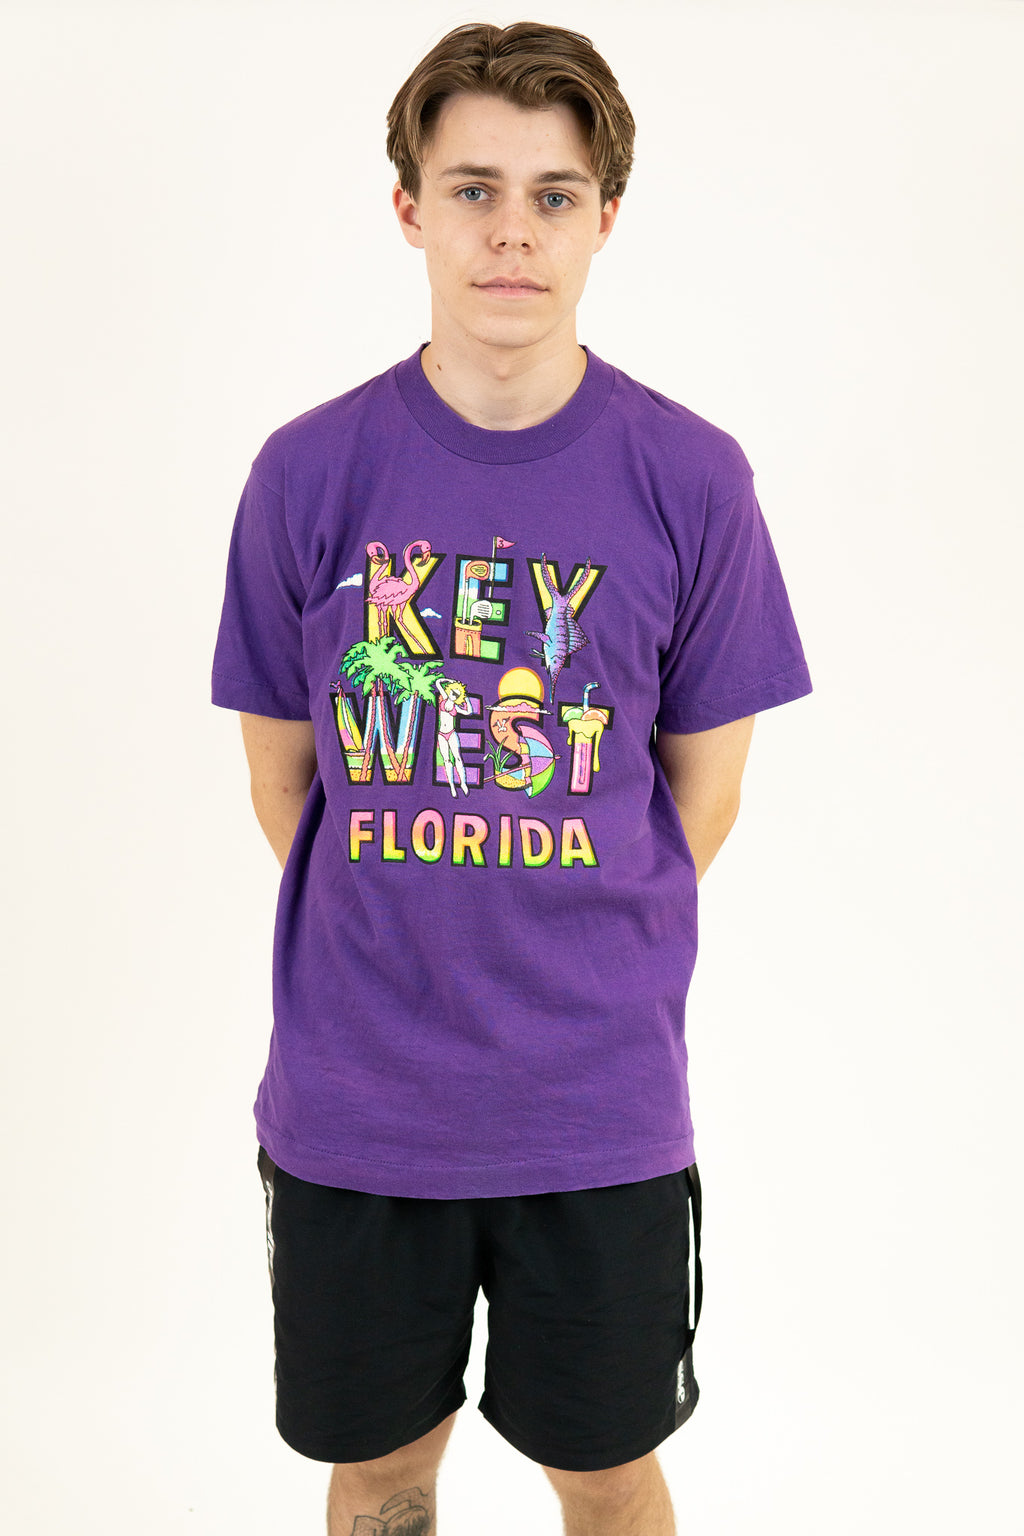 Vintage Key West Florida Tee / Size M